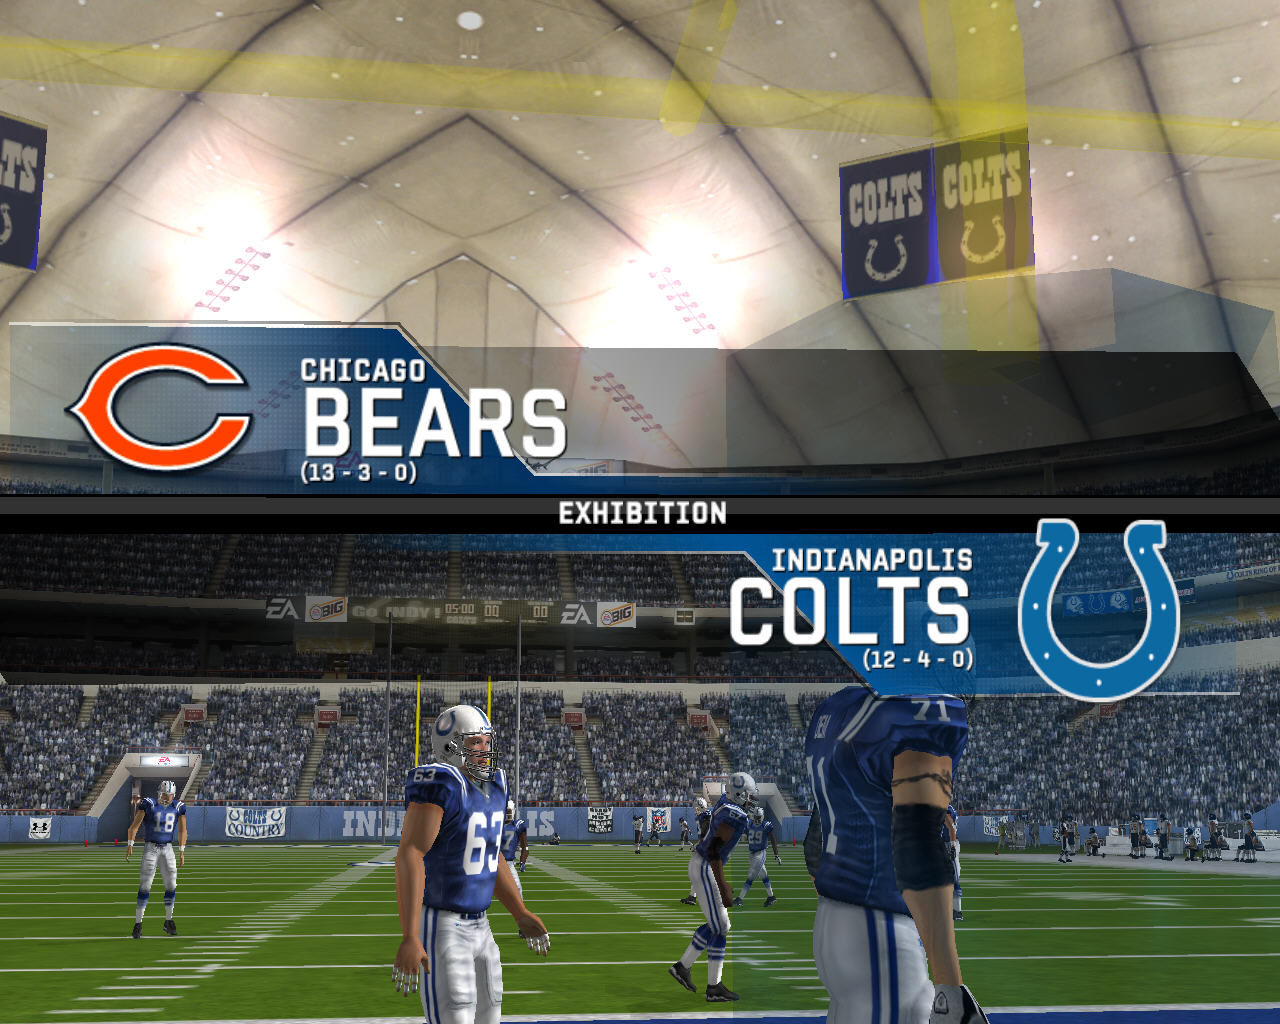 Madden NFL 08 Windows Chicago Bears vs Indianapolis Colts